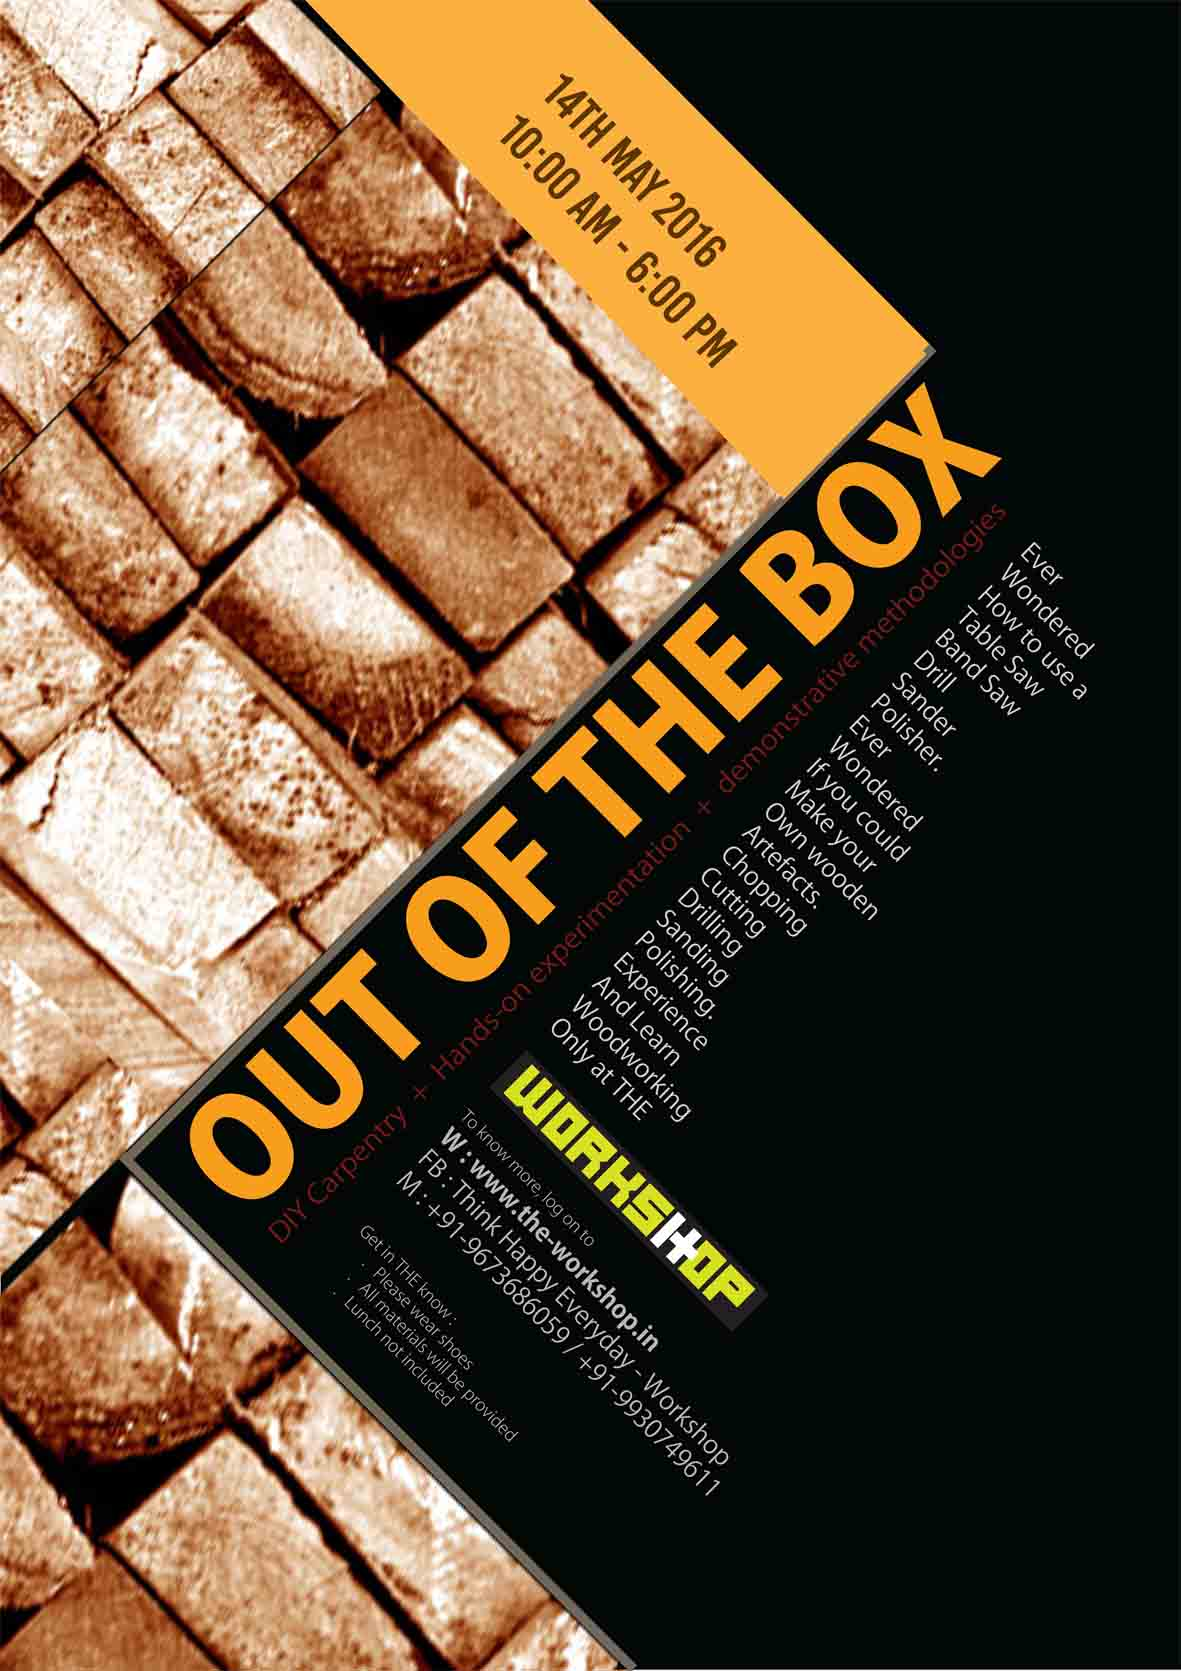 Out of the box_140516_web